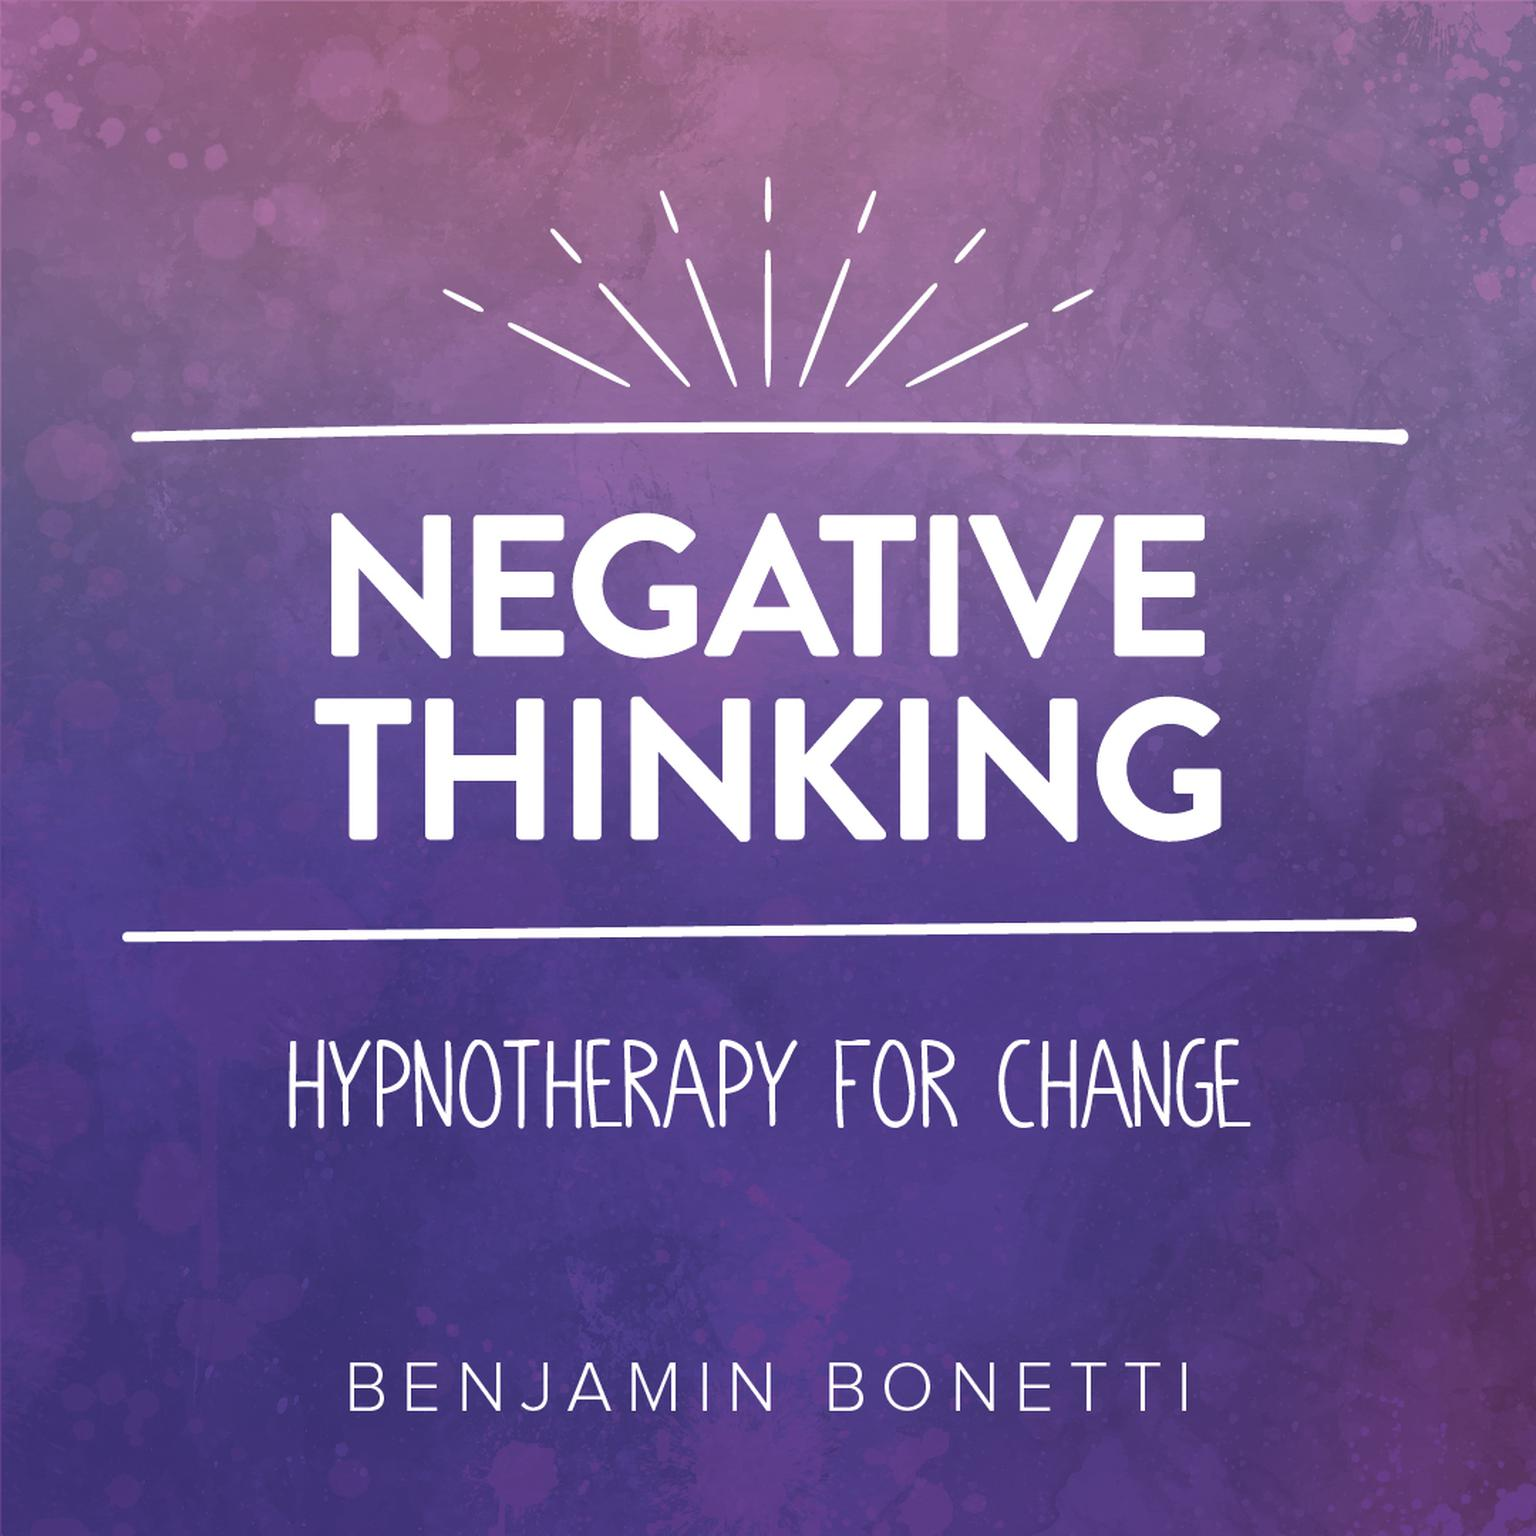 Printable Negative Thinking—Hypnotherapy for Change Audiobook Cover Art